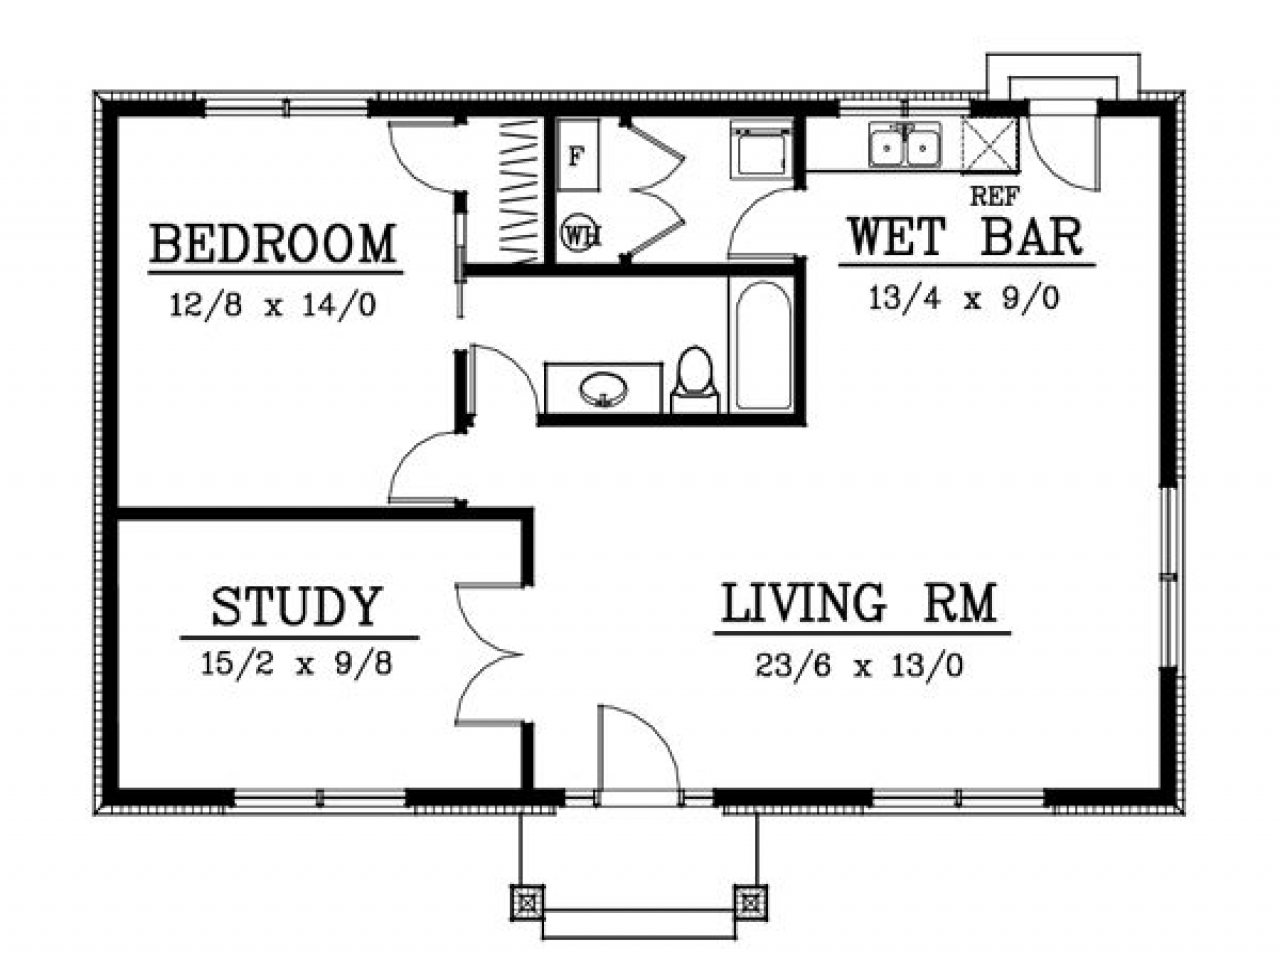 house plans under 1000 sq ft house plans 2 bedroom flat 2 bedroom house plans under 1000 square feet house plans 1000 square 9157